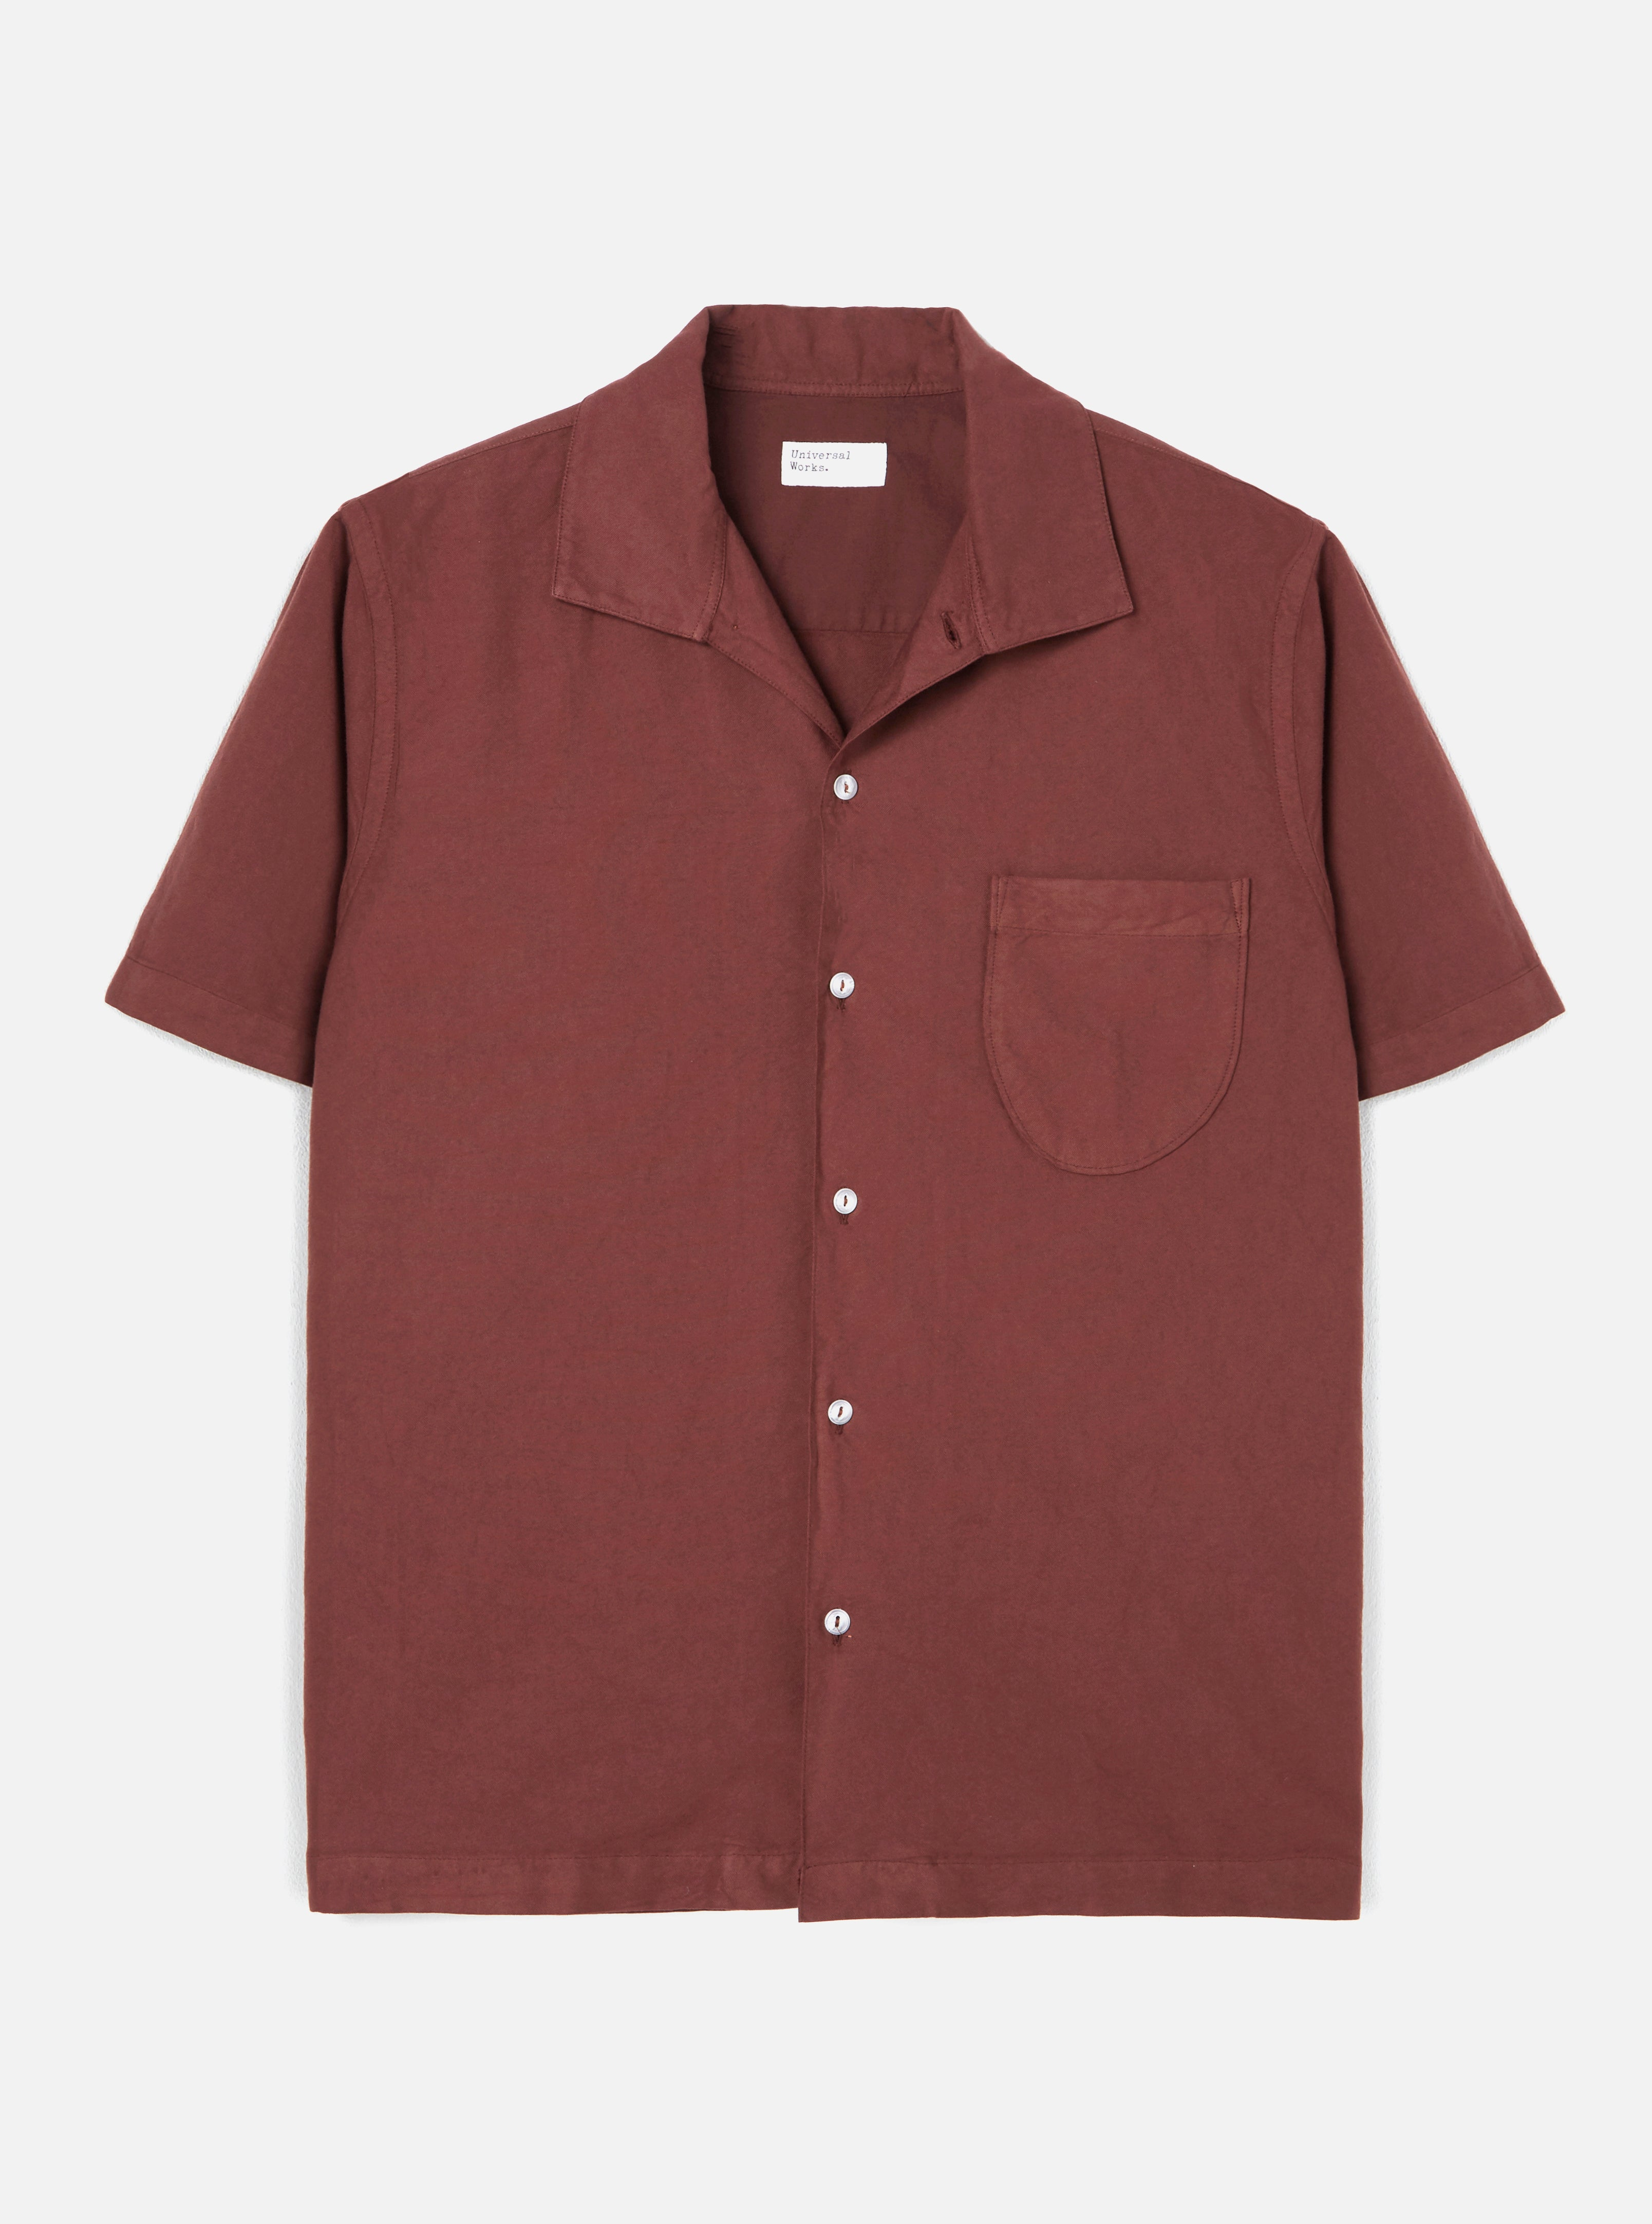 Universal Works Open Collar Shirt in Raisin Oxford